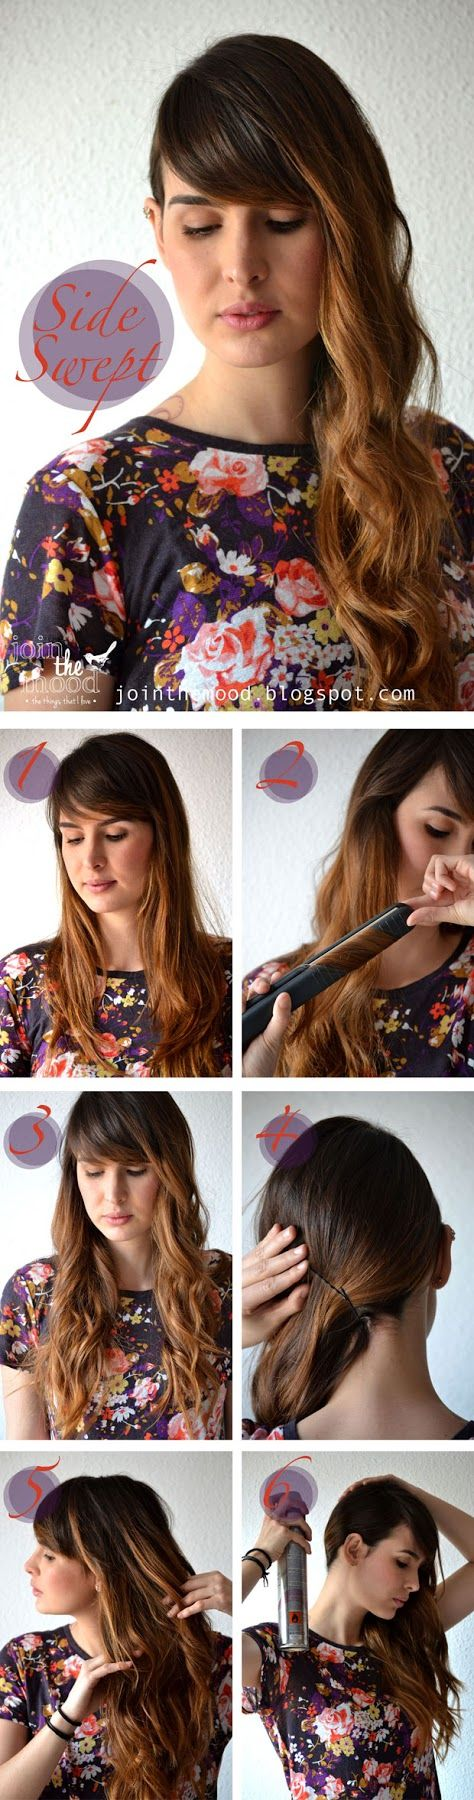 1000 Images About Tutoriels Coiffure On Pinterest Bun Hair